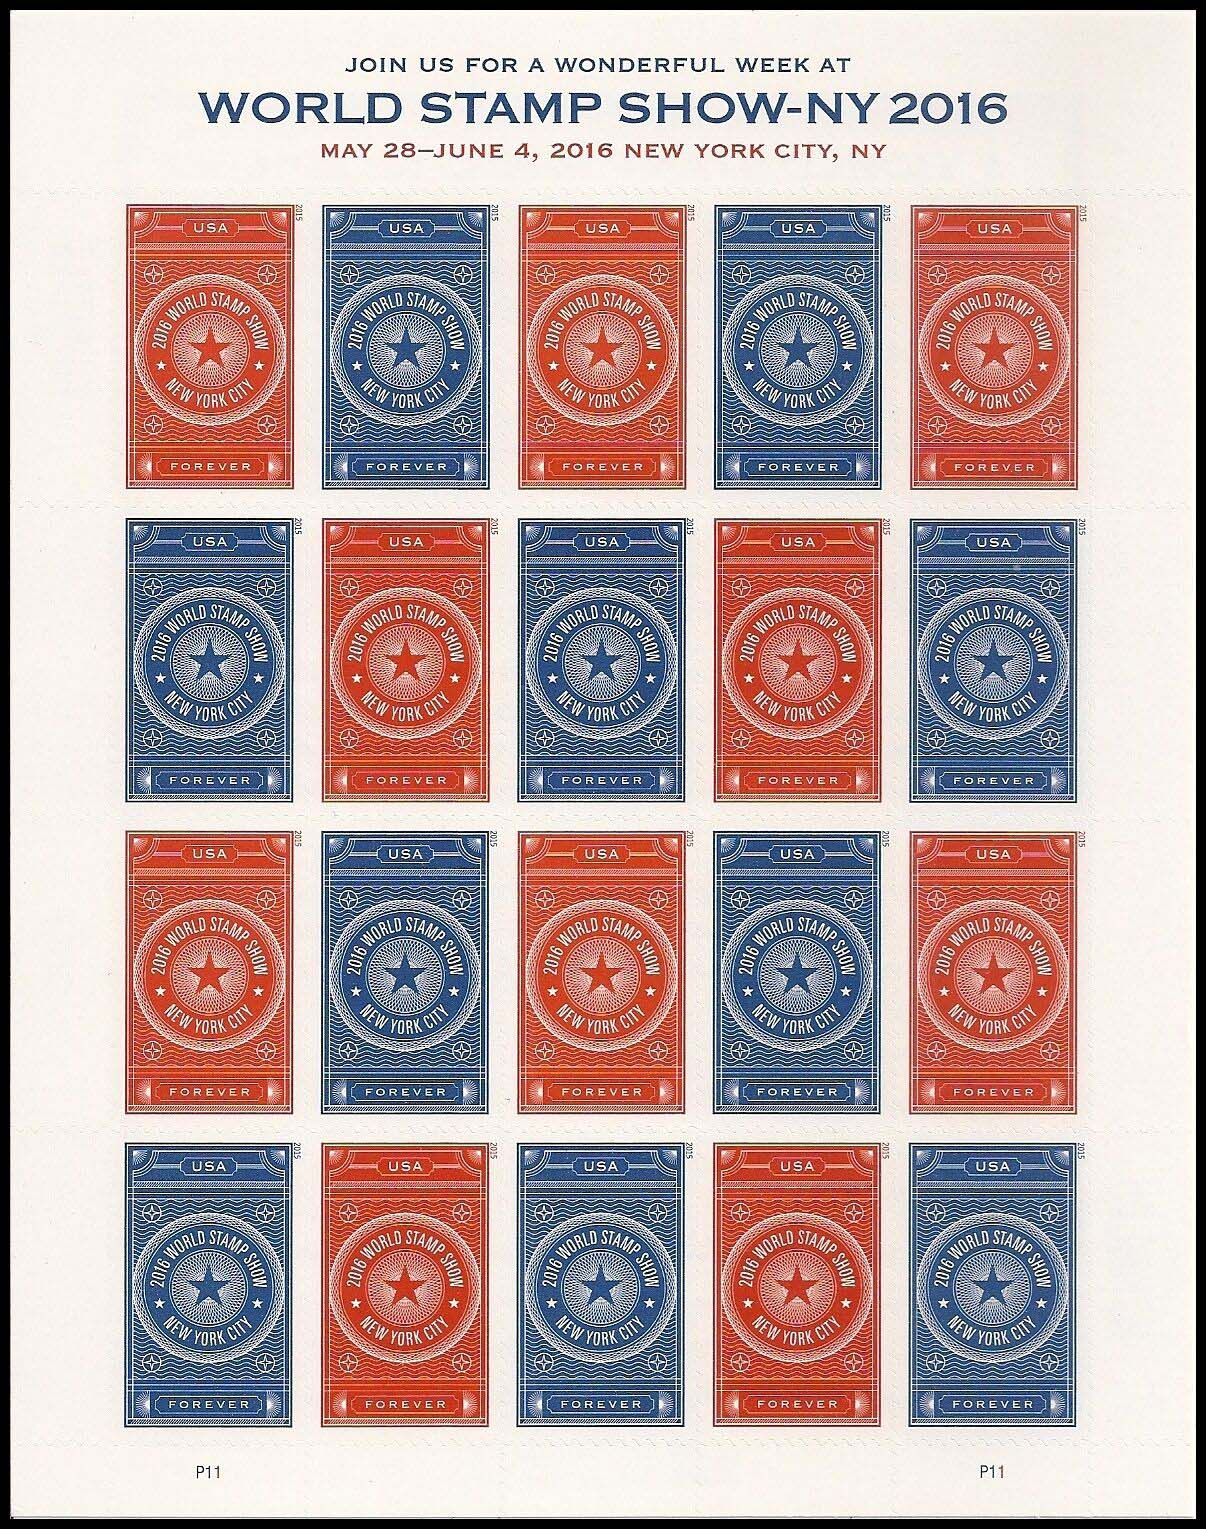 Scott #5010-5011, Forever Sheet of 20, 2016 World Stamp Show